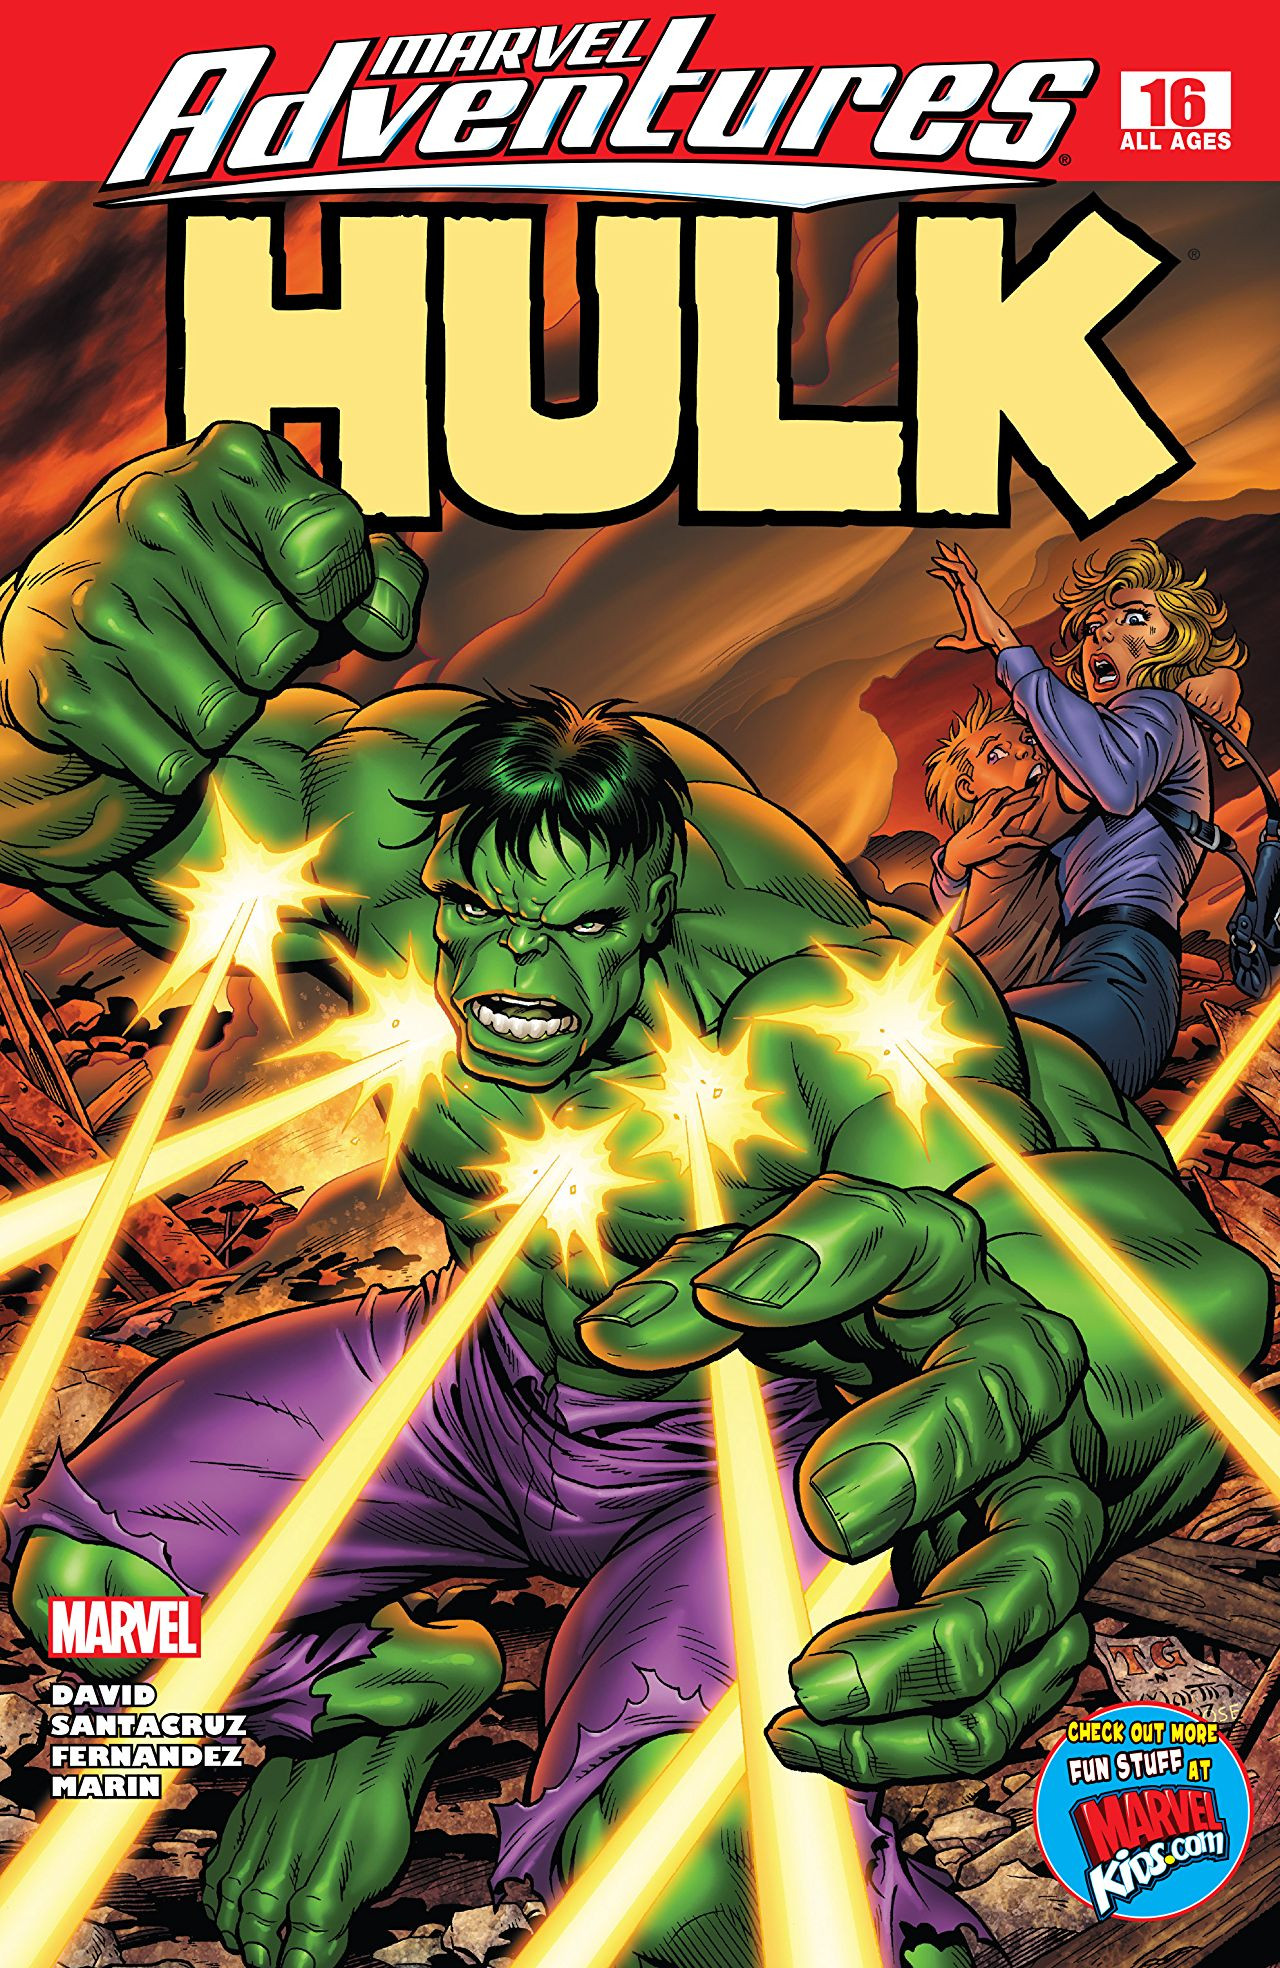 Marvel Adventures: Hulk Vol 1 16